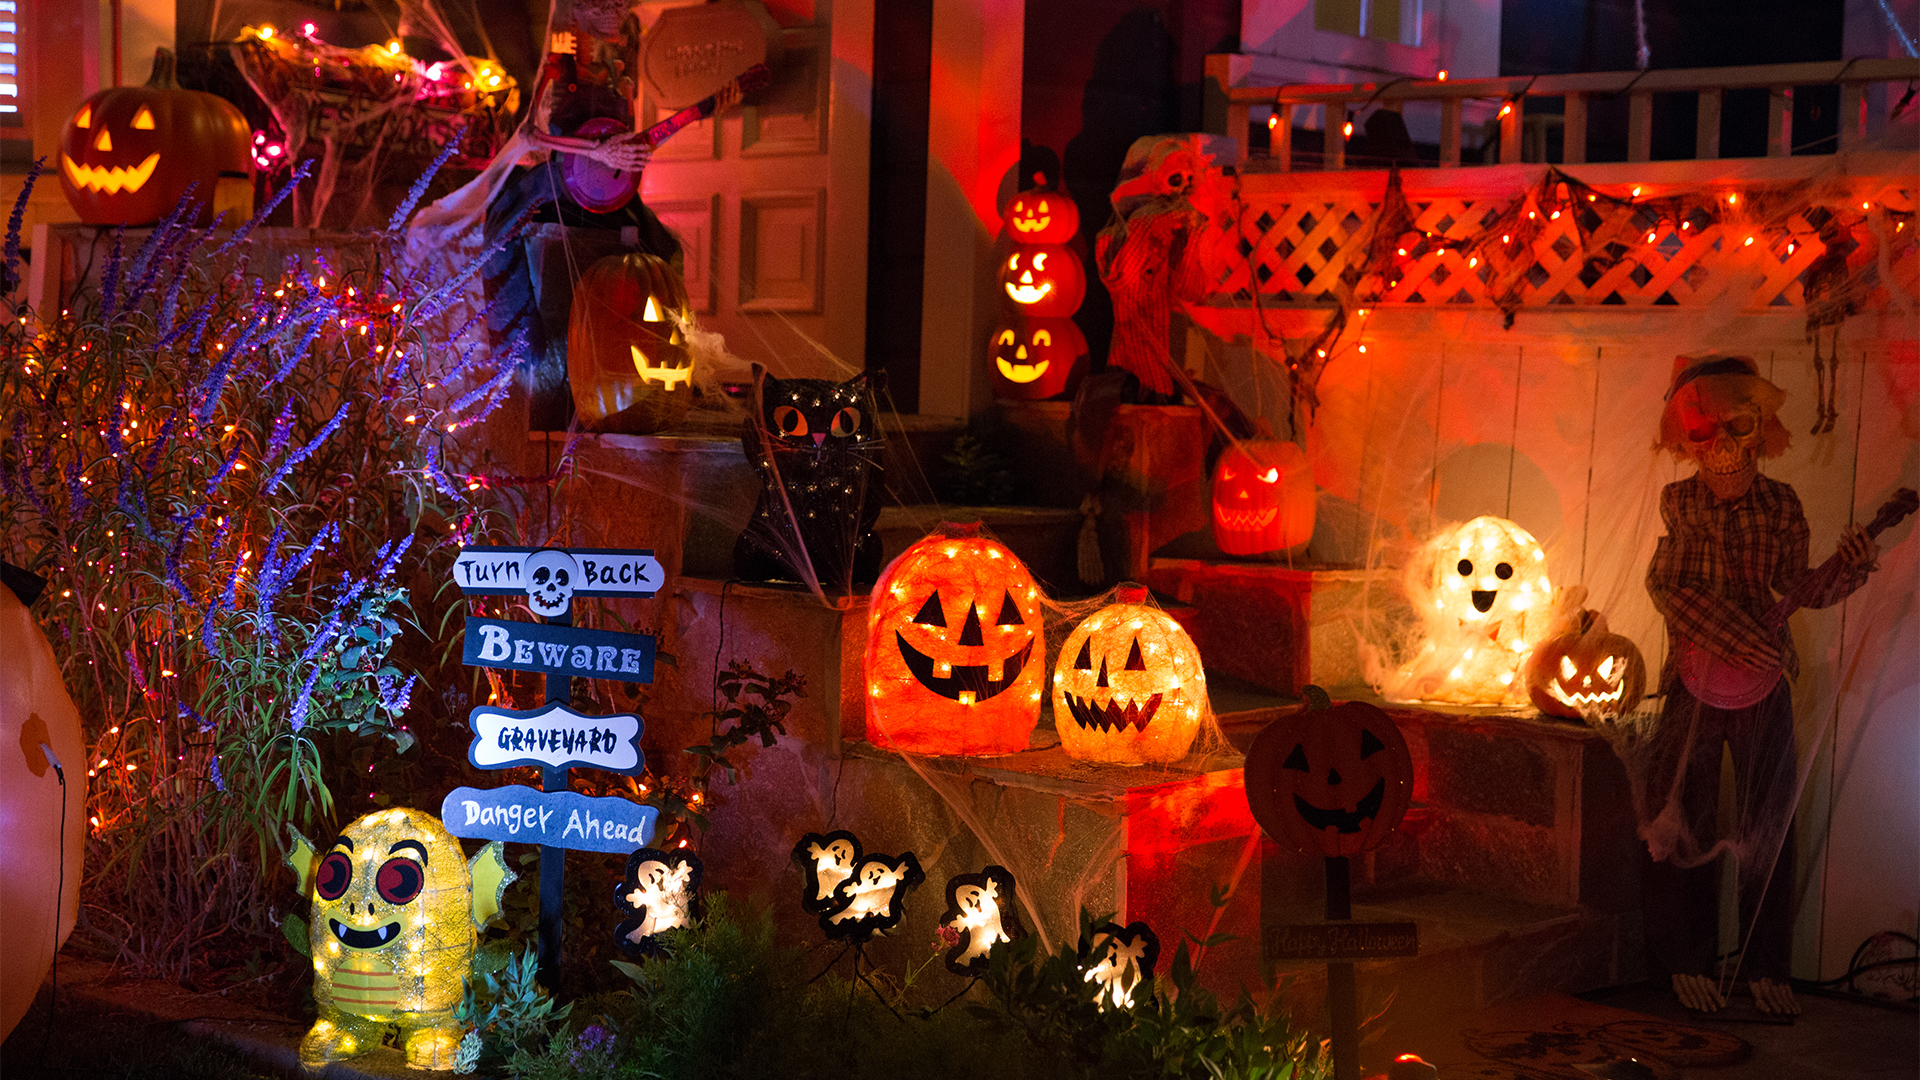 2020 Halloween Events Pinellas Halloween 2020: List of local events | WFLA